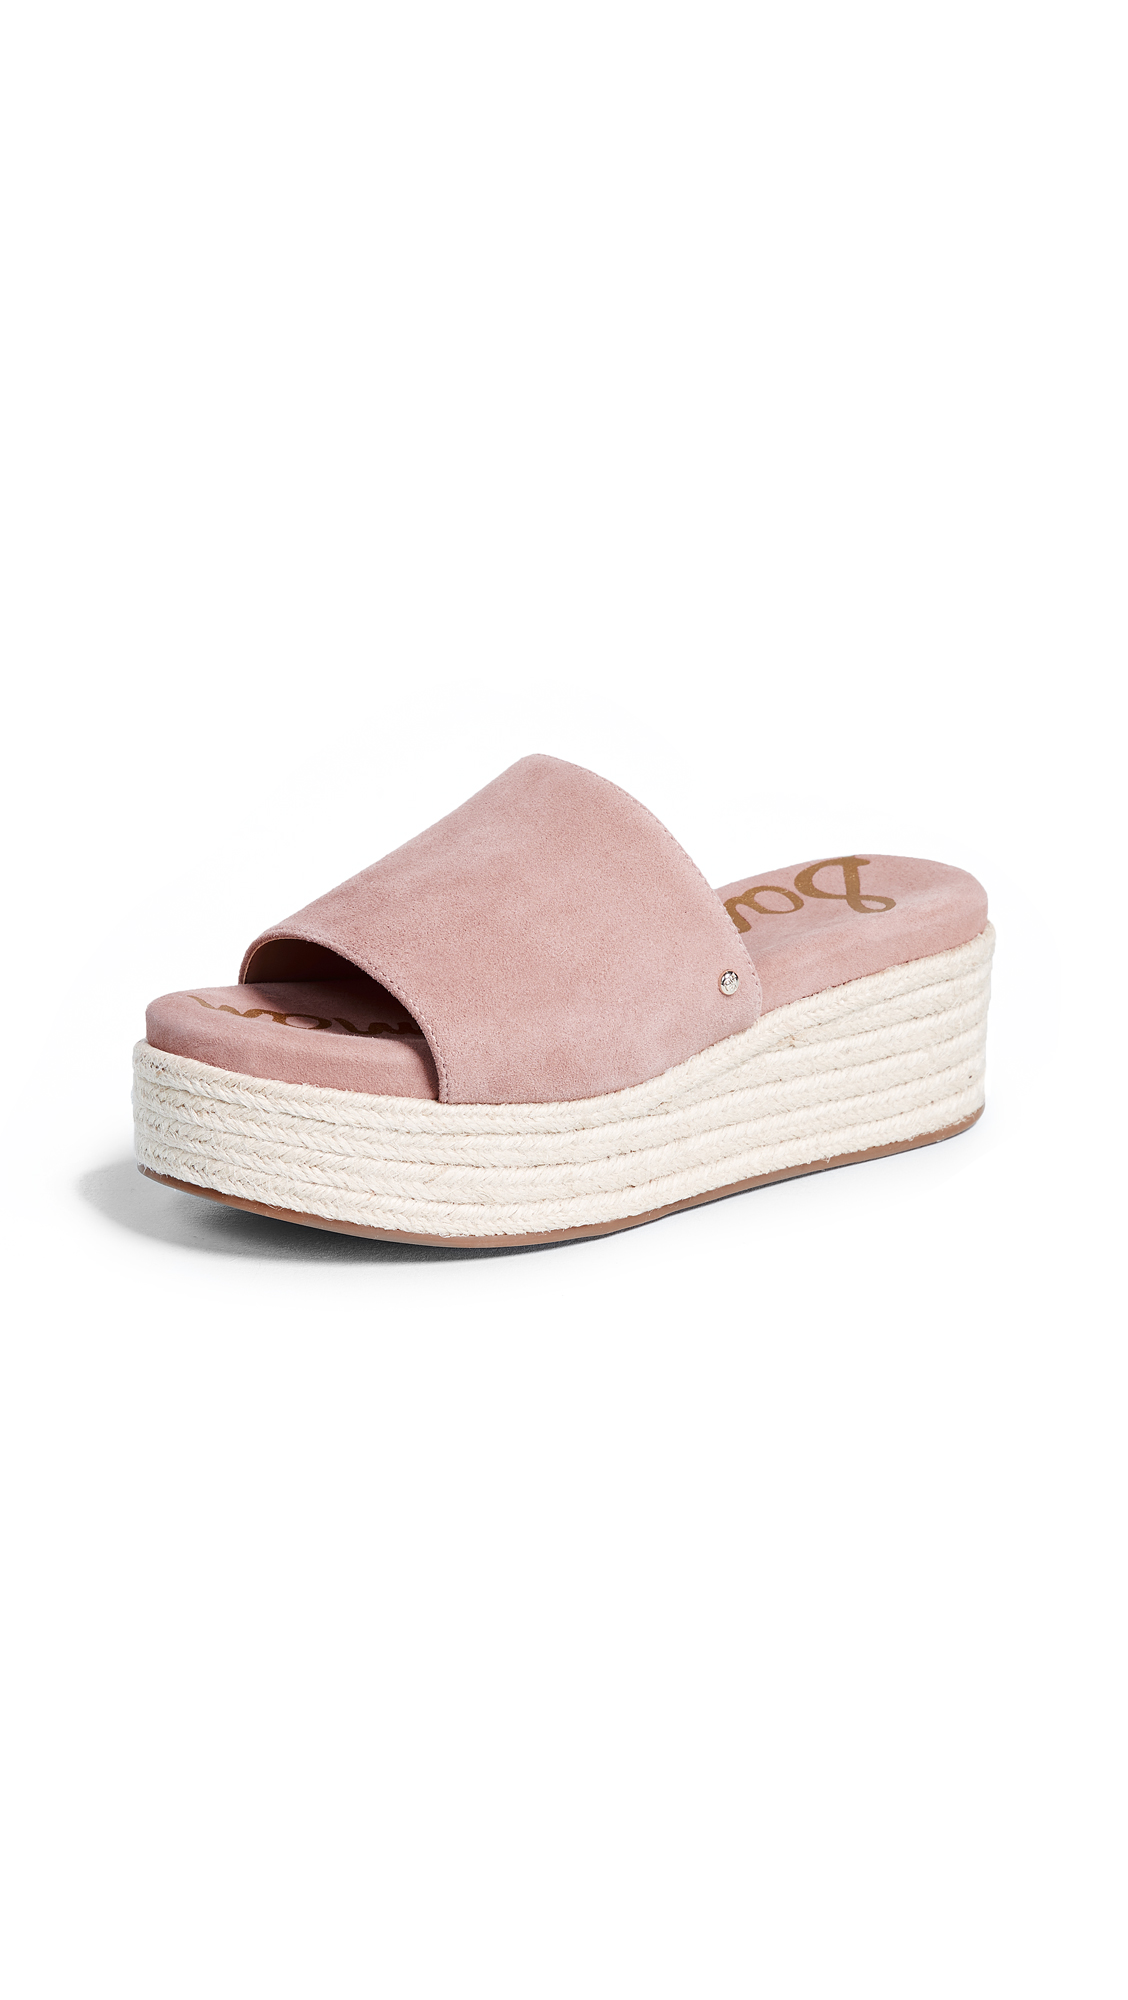 Sam Edelman Weslee Platform Slides - Dusty Rose